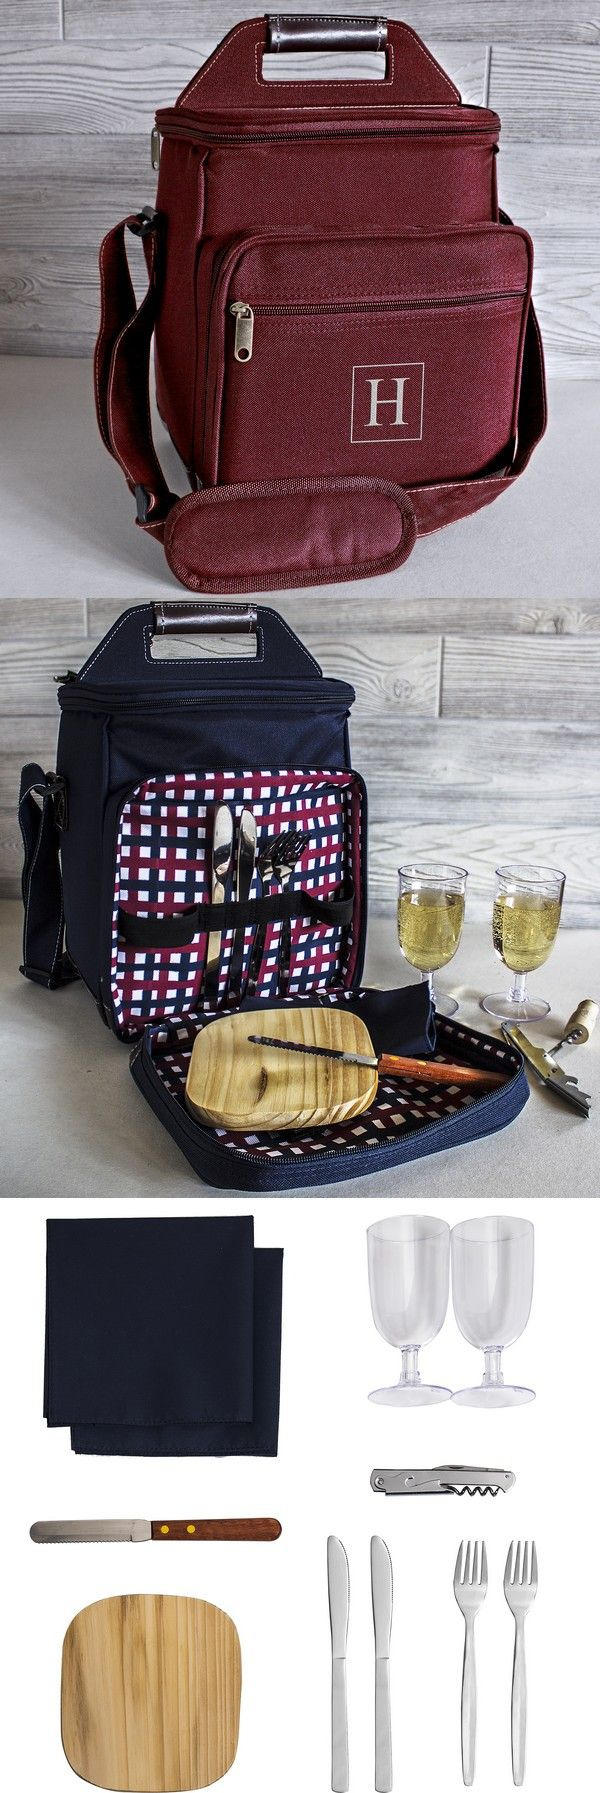 A unique gift that can be used all summer long for picnicking, family day trips, tailgating, and boating, this polyester canvas cooler custom embroidered with large single initial includes a 11 piece utensils set including 2 cloth napkins, 2 stainless knife and fork sets, 2 acrylic wine glasses, wood cheese board with cheese knife, and stainless steel bottle opener. This great summer gift idea can be ordered at…